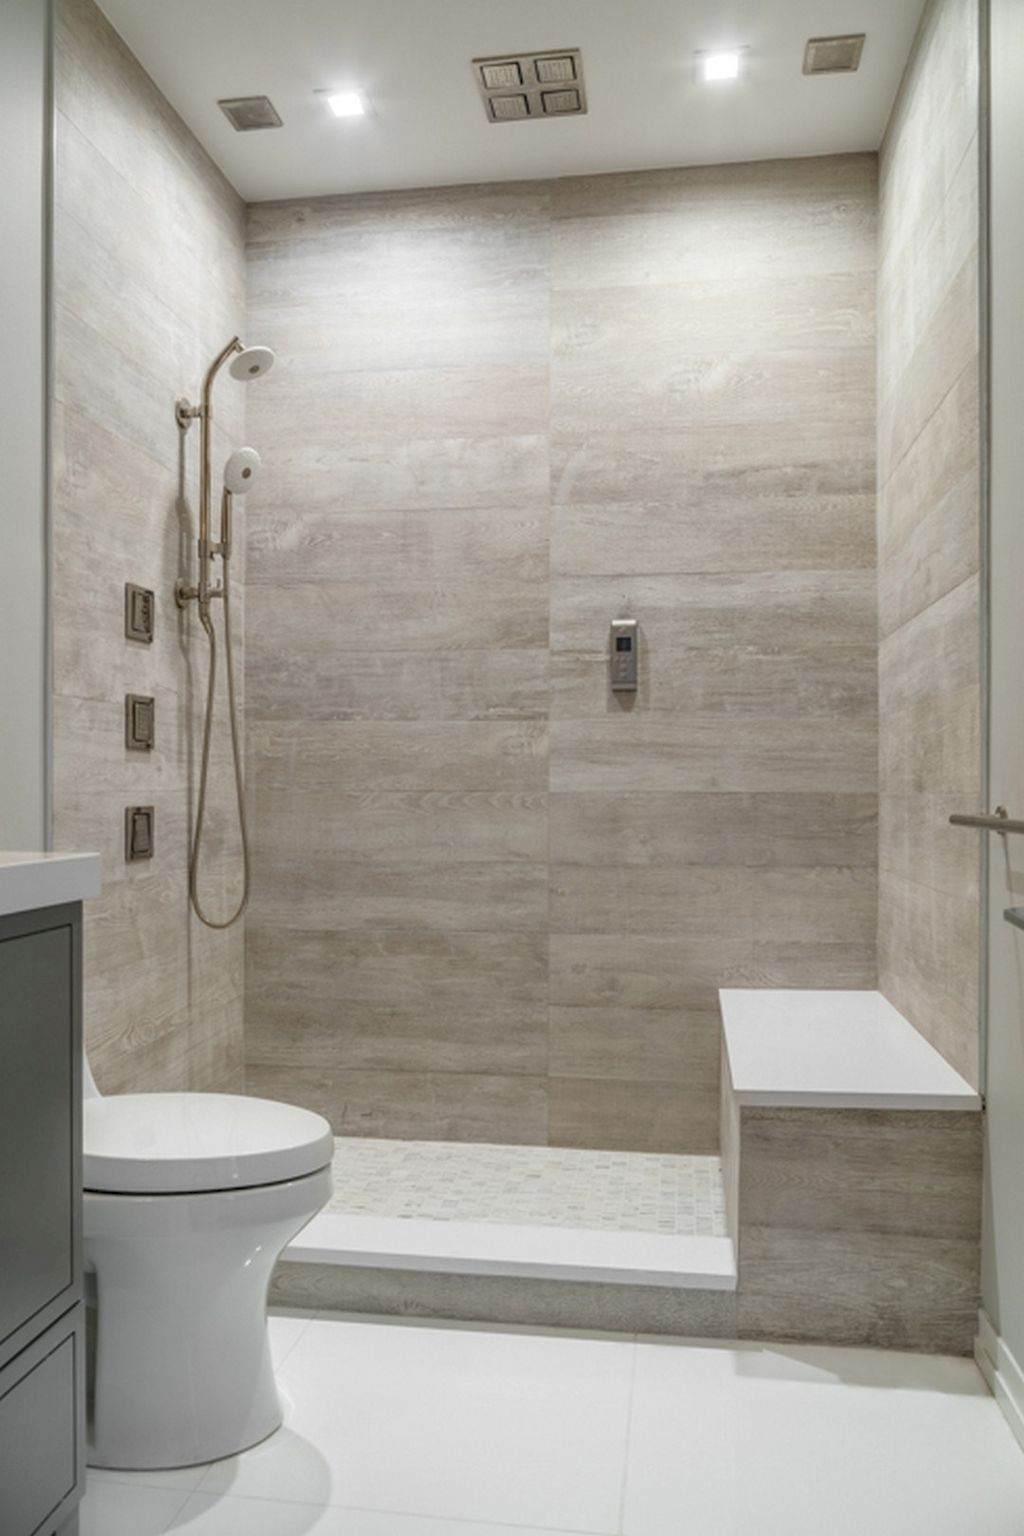 10 Best Tile Color For Small Bathroom Some Of The Most Inspiring